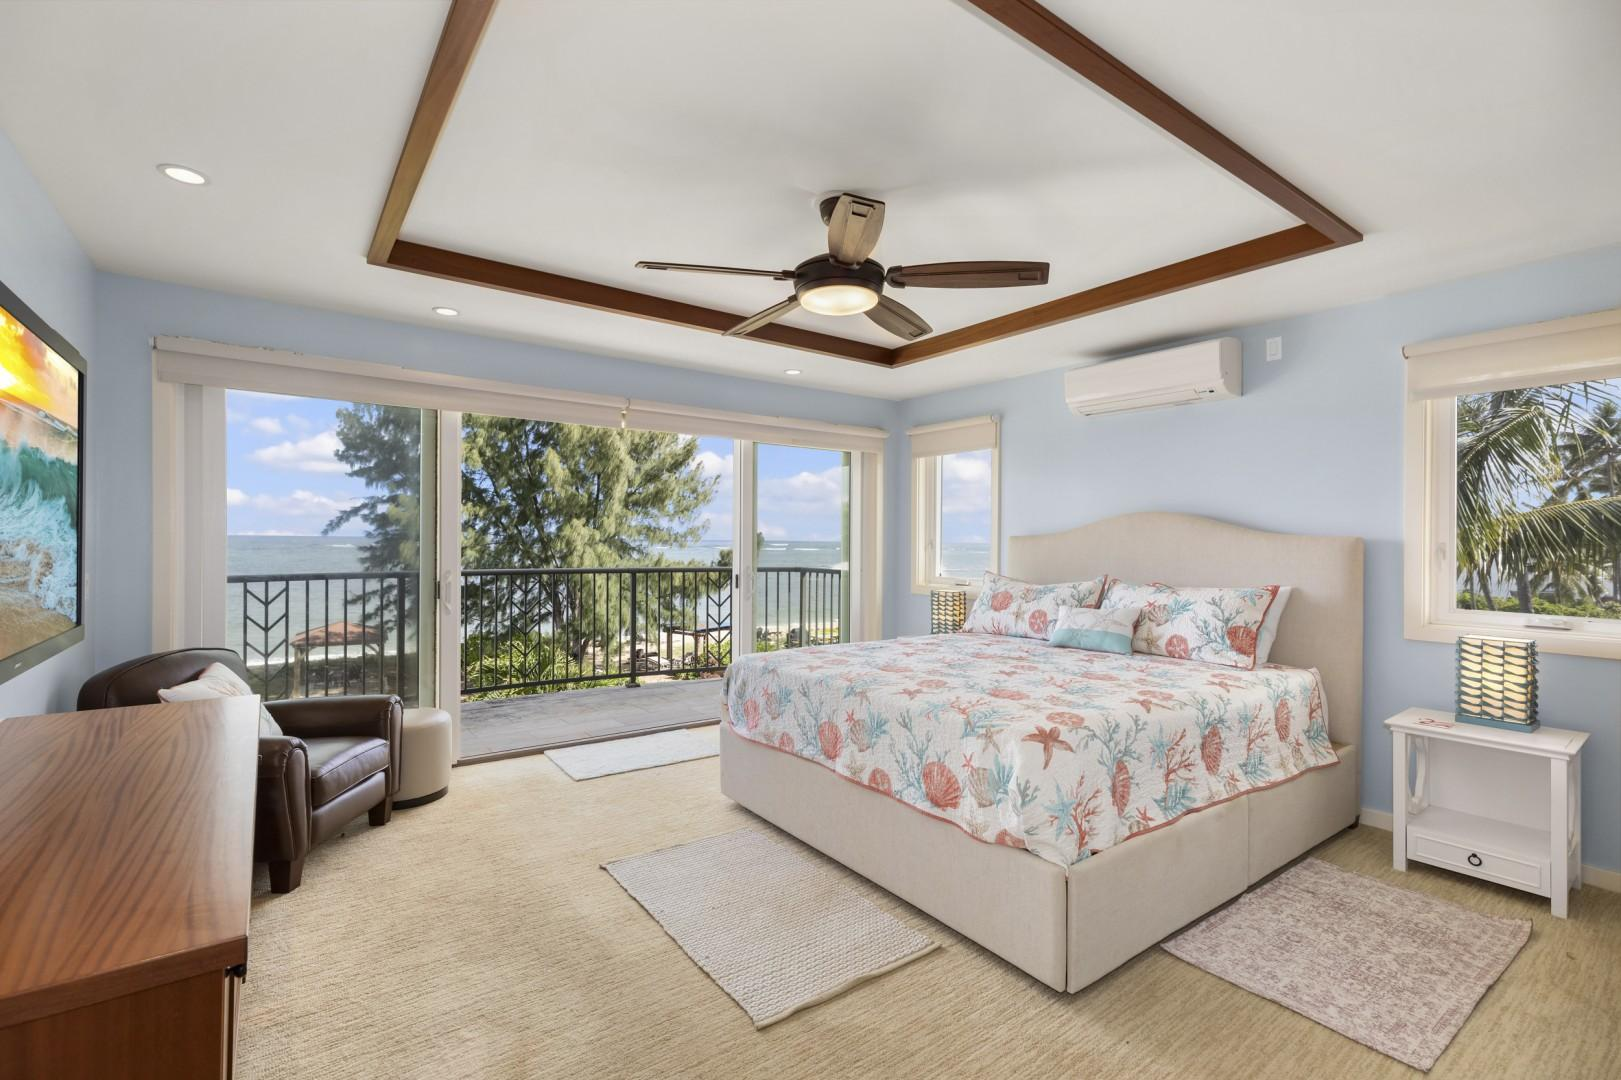 Master bedroom with Tempur-Pedic California king bed, see-through fireplace, split air conditioning, and lanai with a view of the pool and ocean.